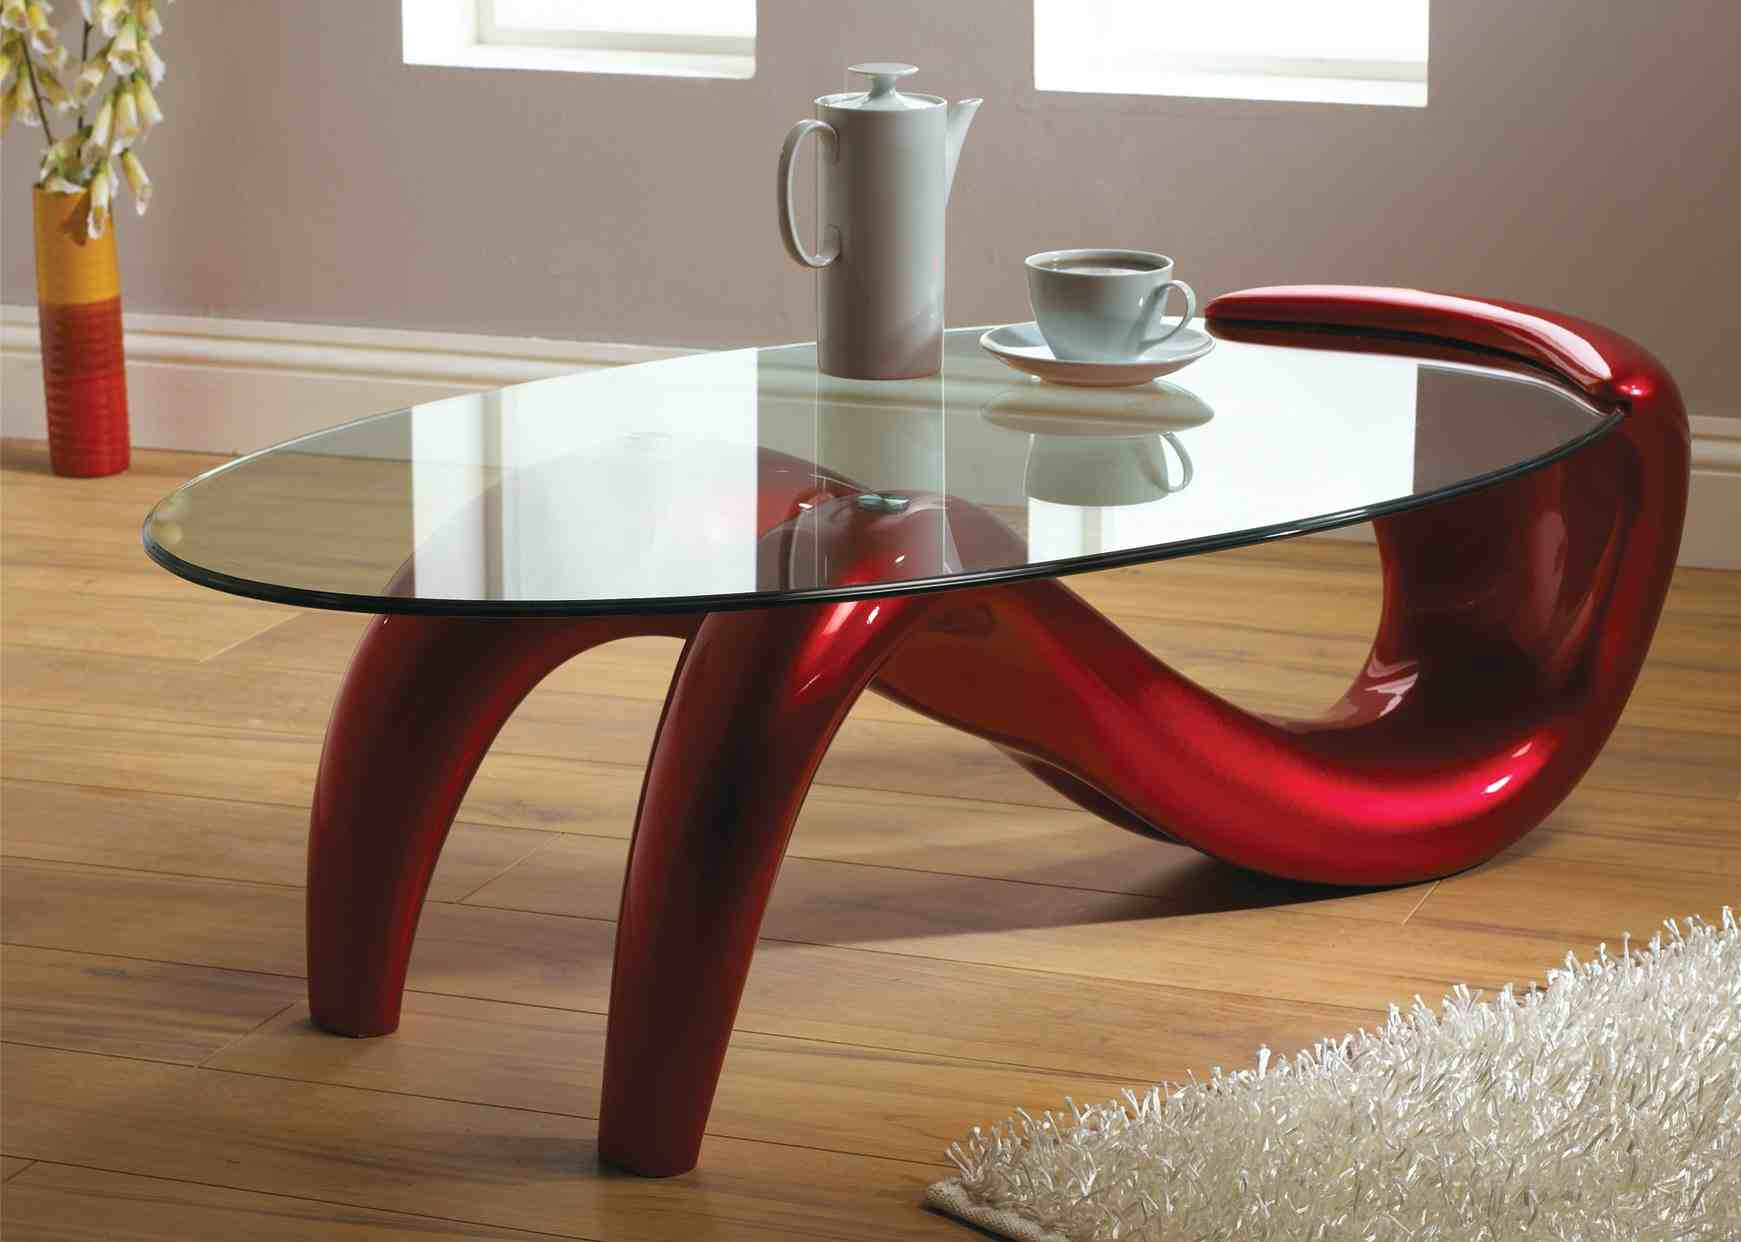 modern glass coffee table design images photos pictures. Black Bedroom Furniture Sets. Home Design Ideas